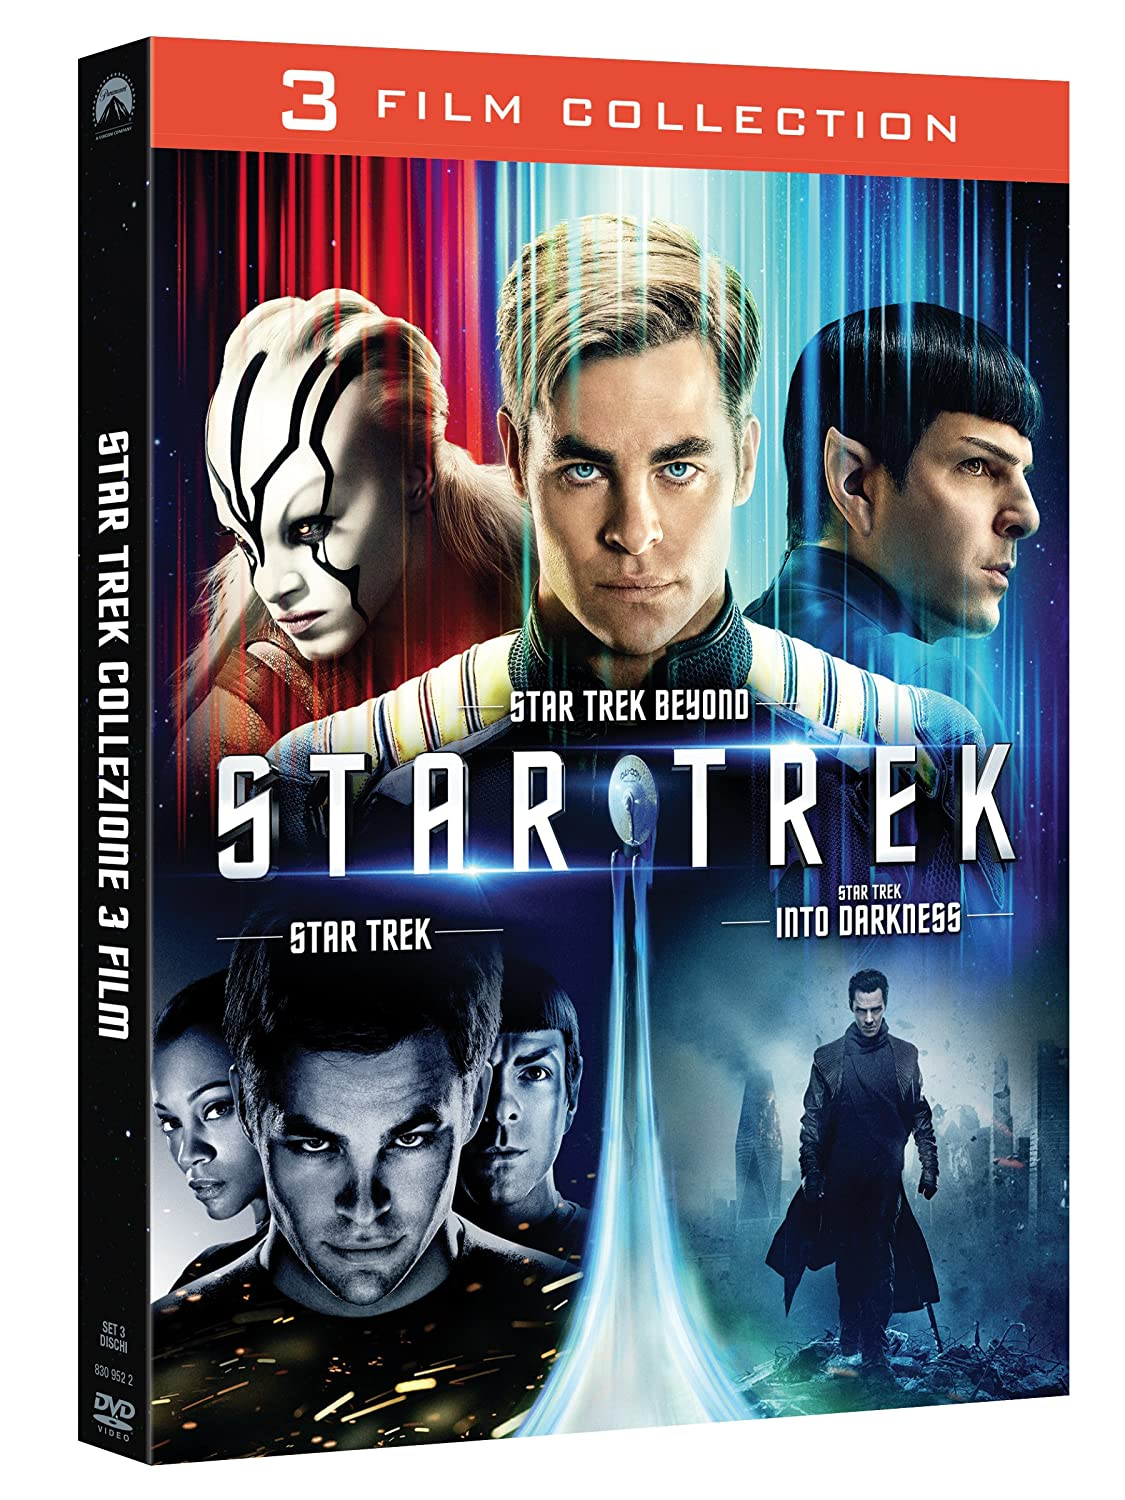 Star Trek Collection DVD